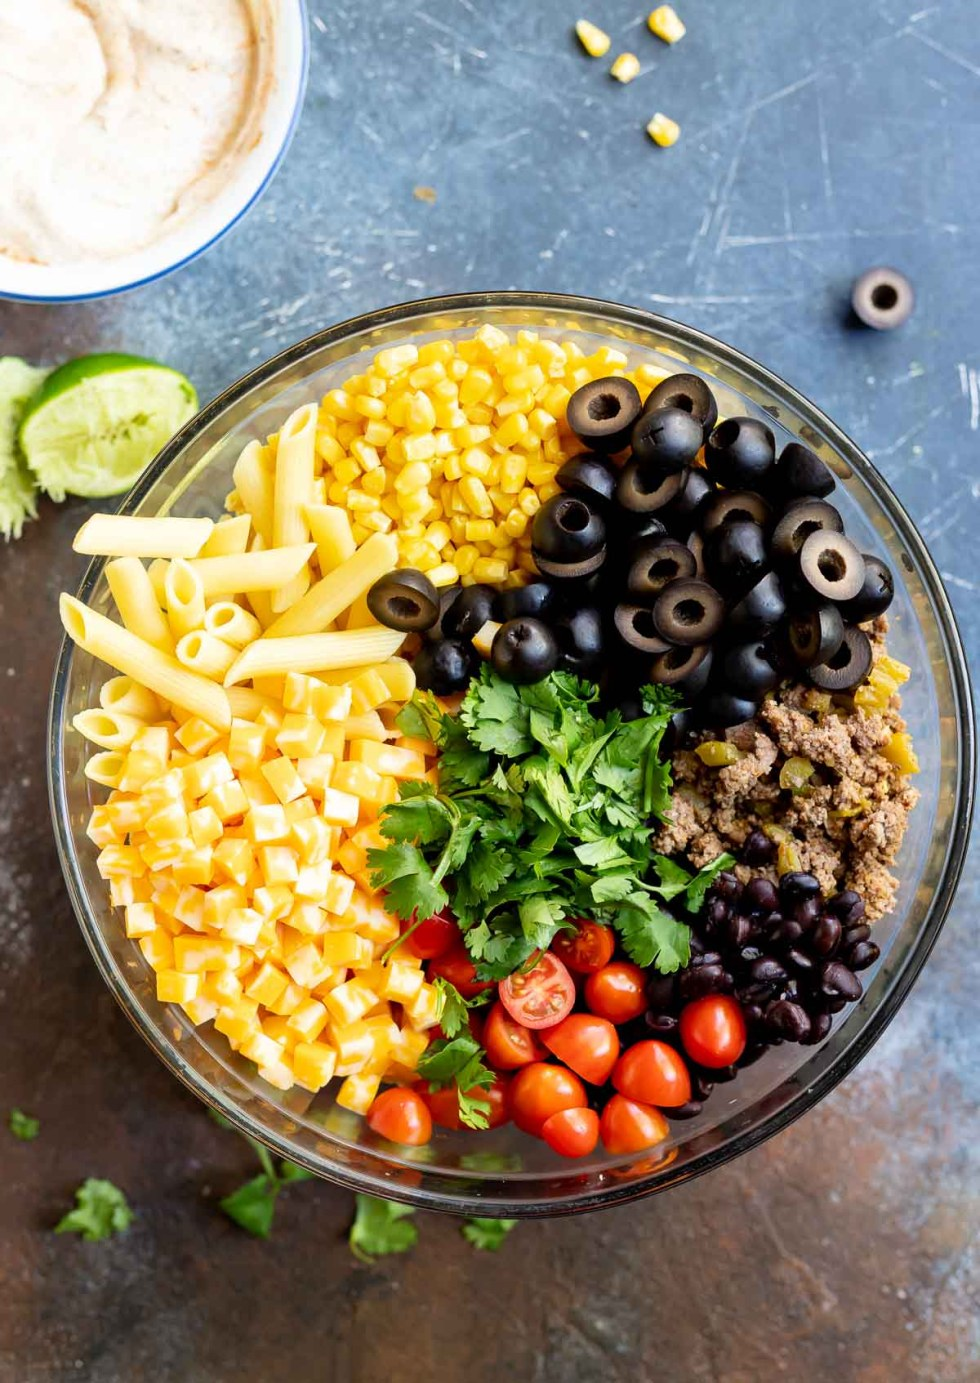 ingredients for taco pasta salad in glass bowl